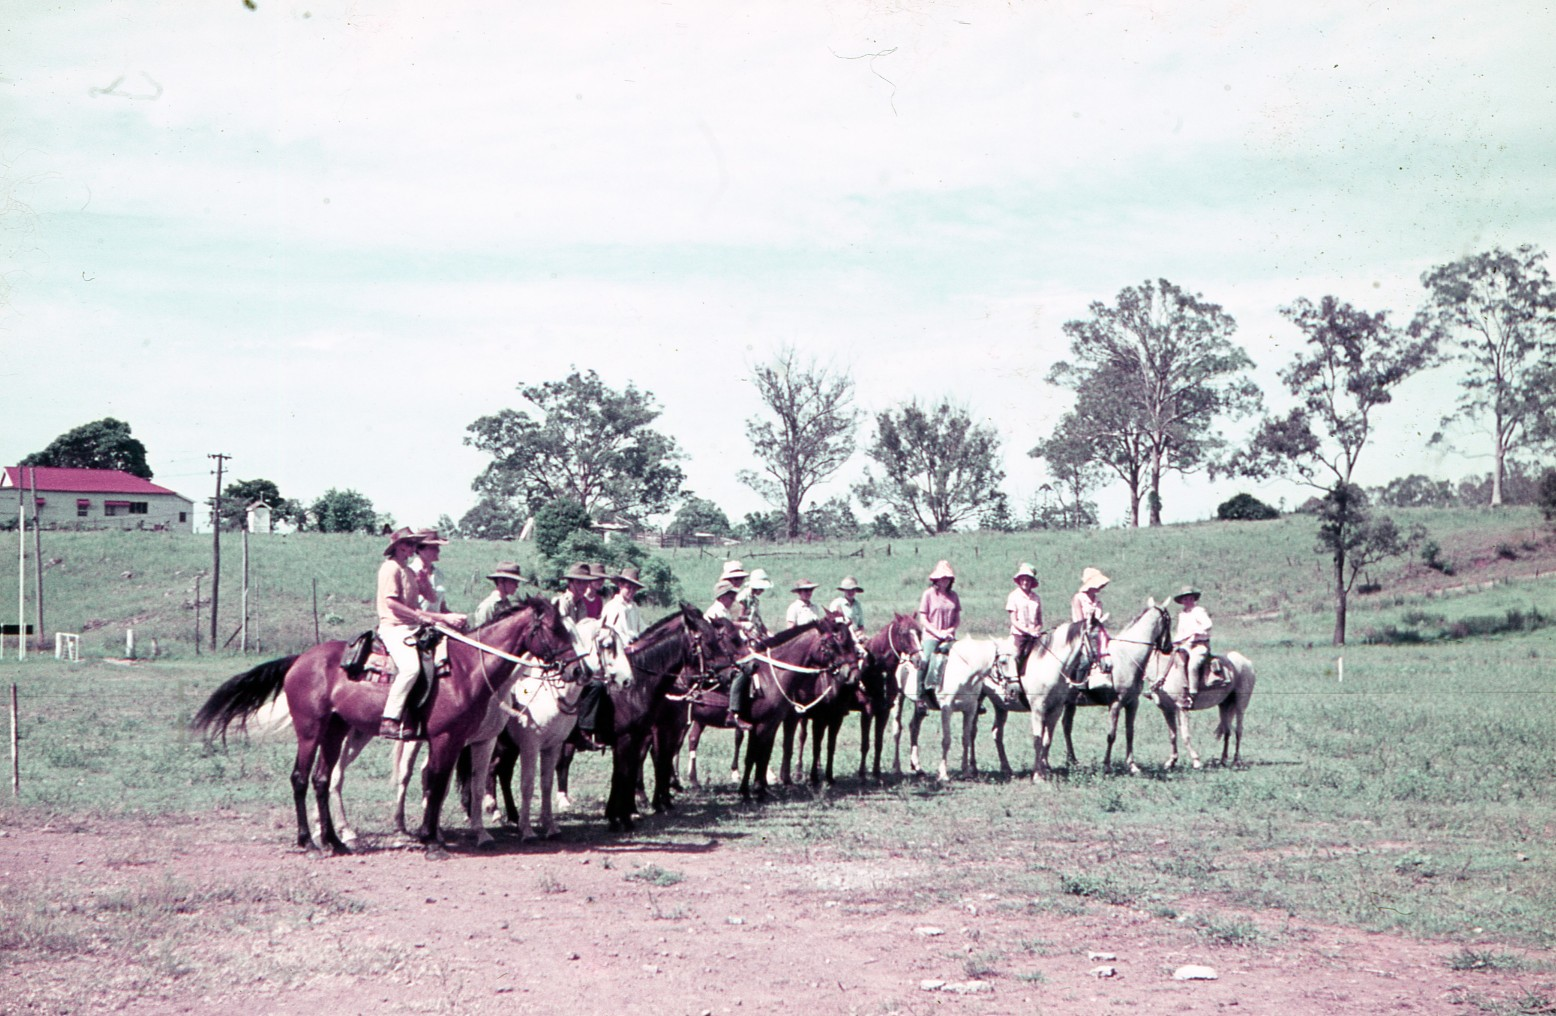 Our history - Moggill Pony Club was established in April 1961